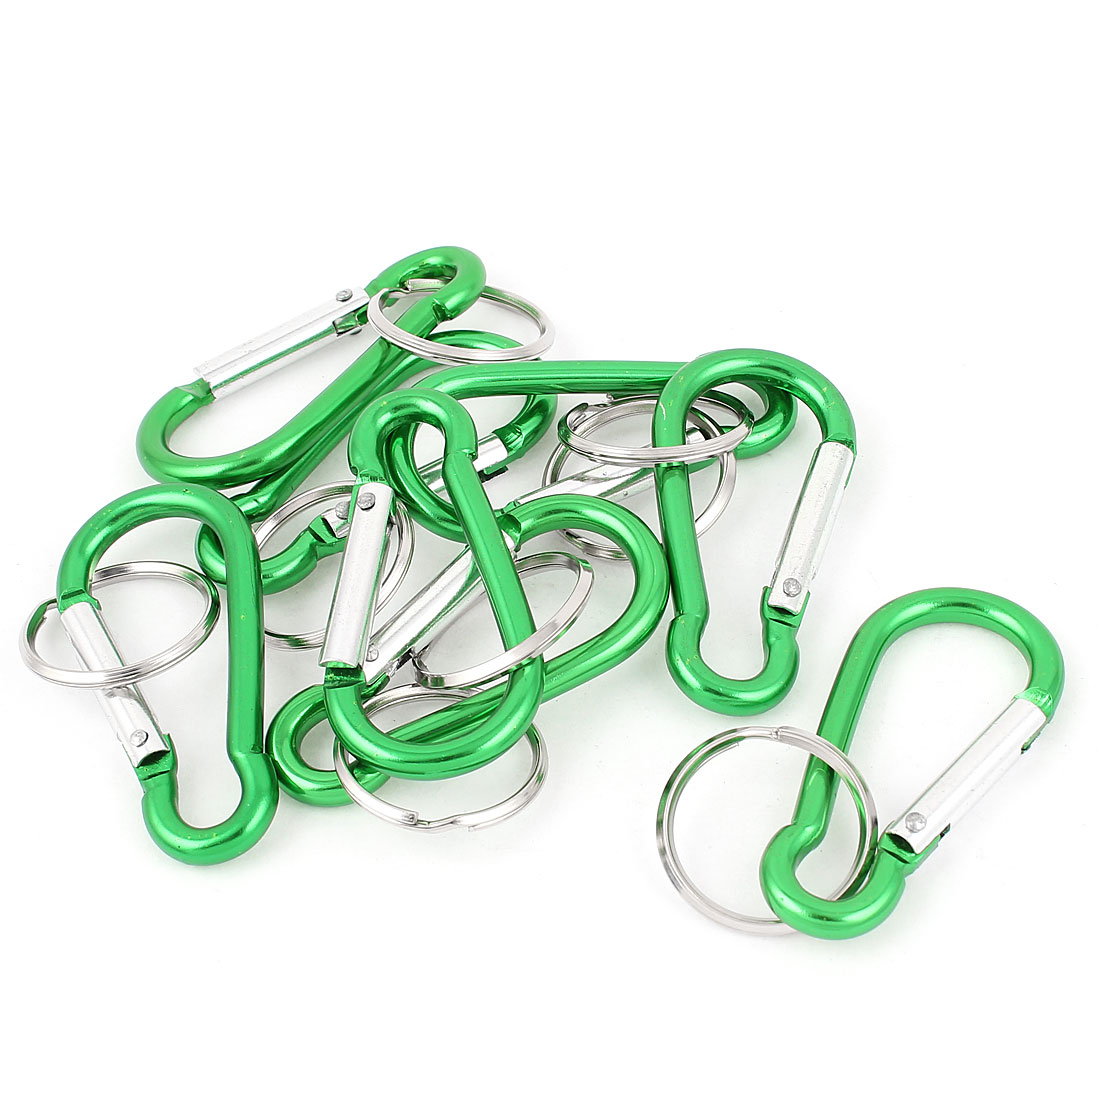 8pcs Green Metal Carabiner Clips Spring Belt Snap Key Chain Ring Keychain Camping Hook